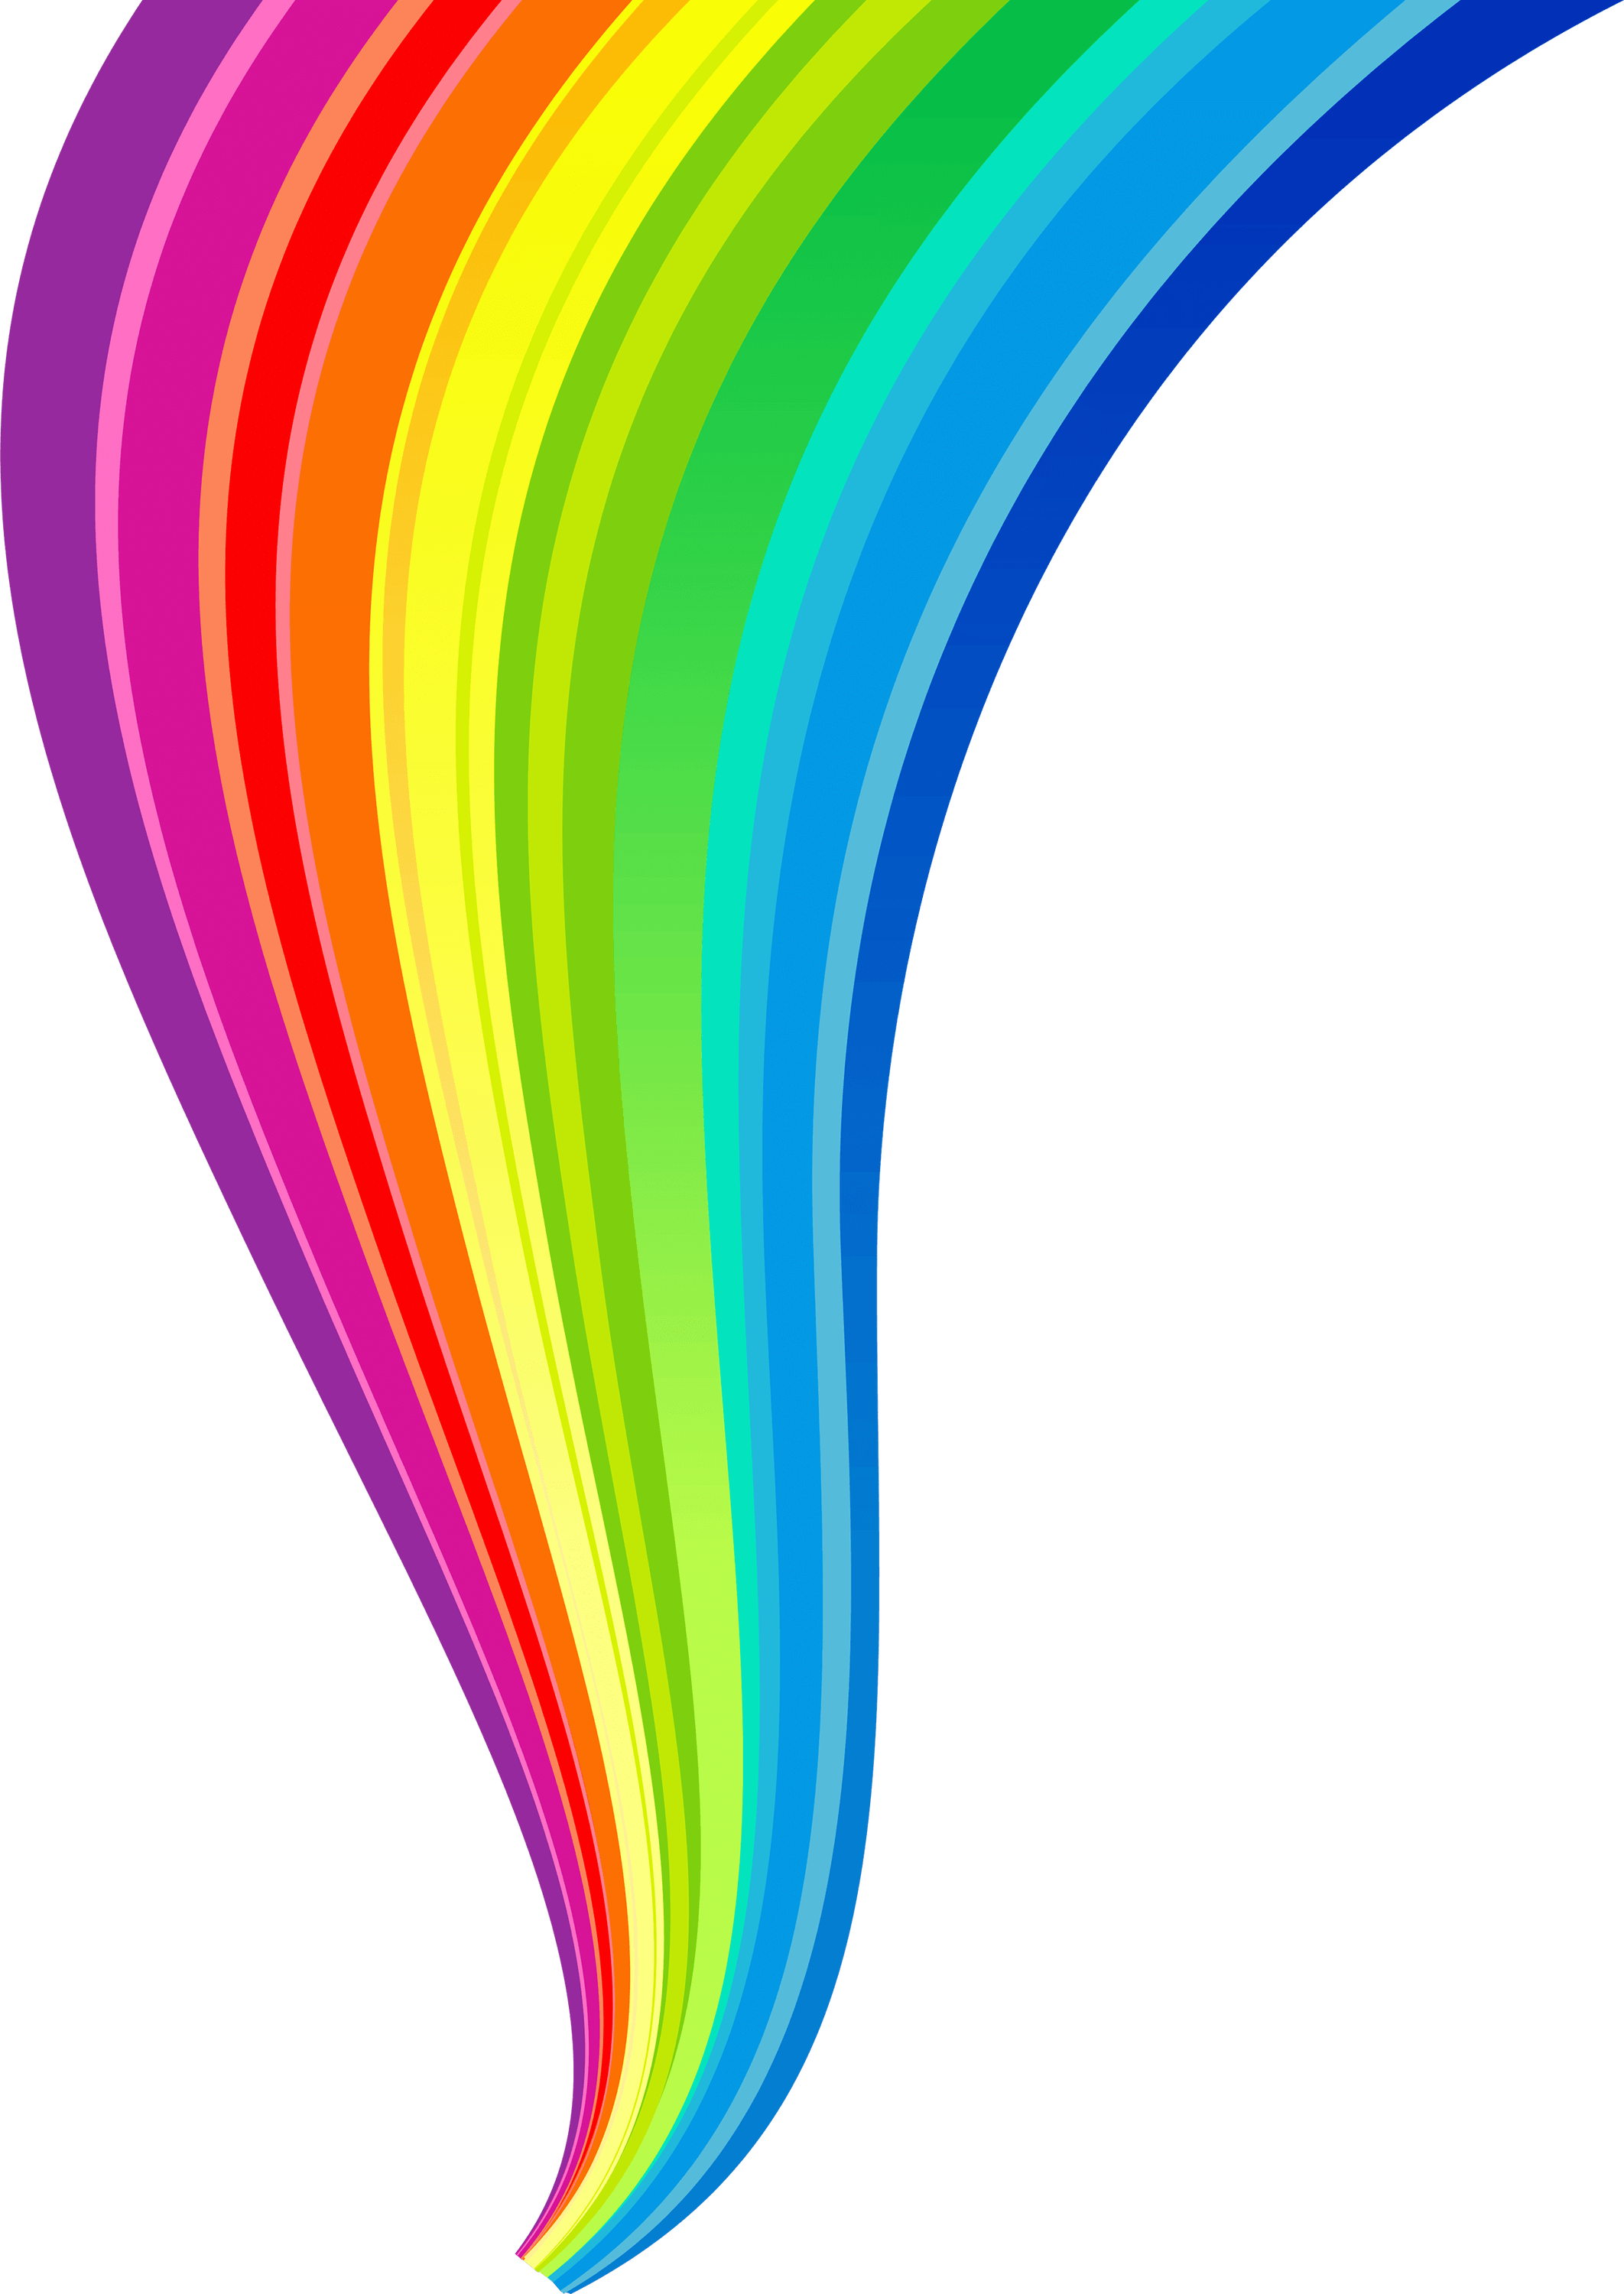 Clipart flames rainbow. Flame transparent png stickpng